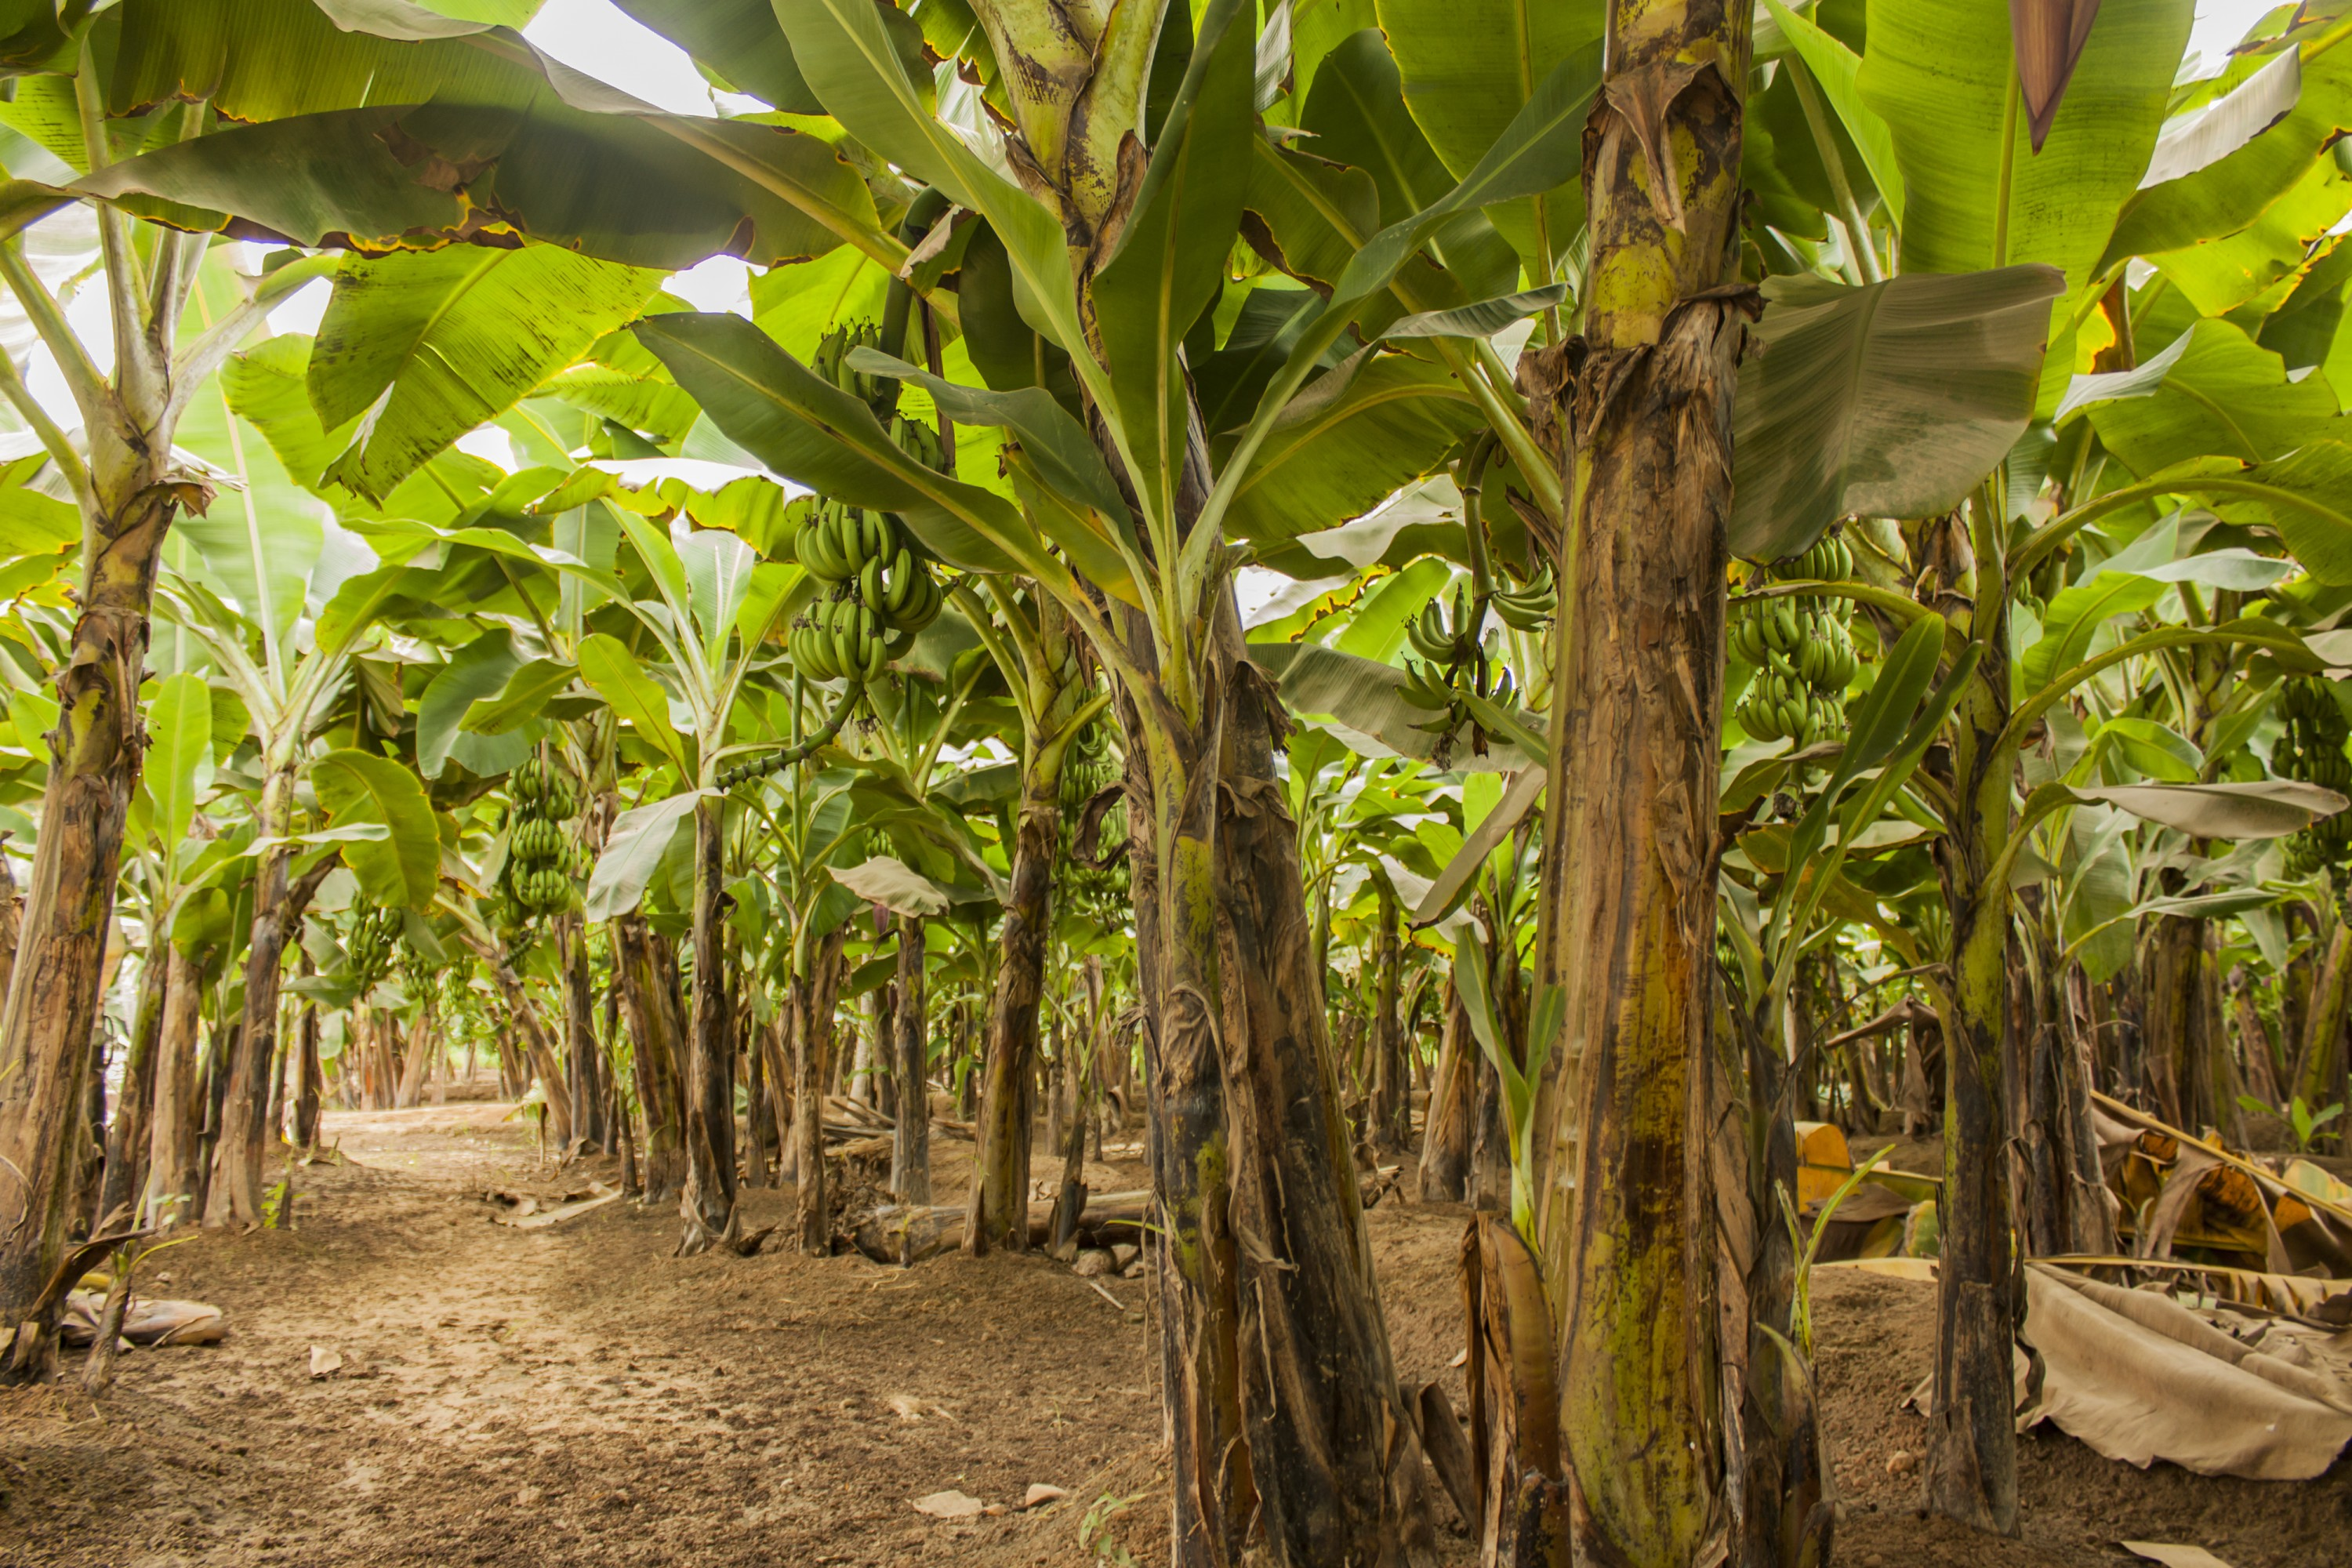 Banana trees in Zimbabwe